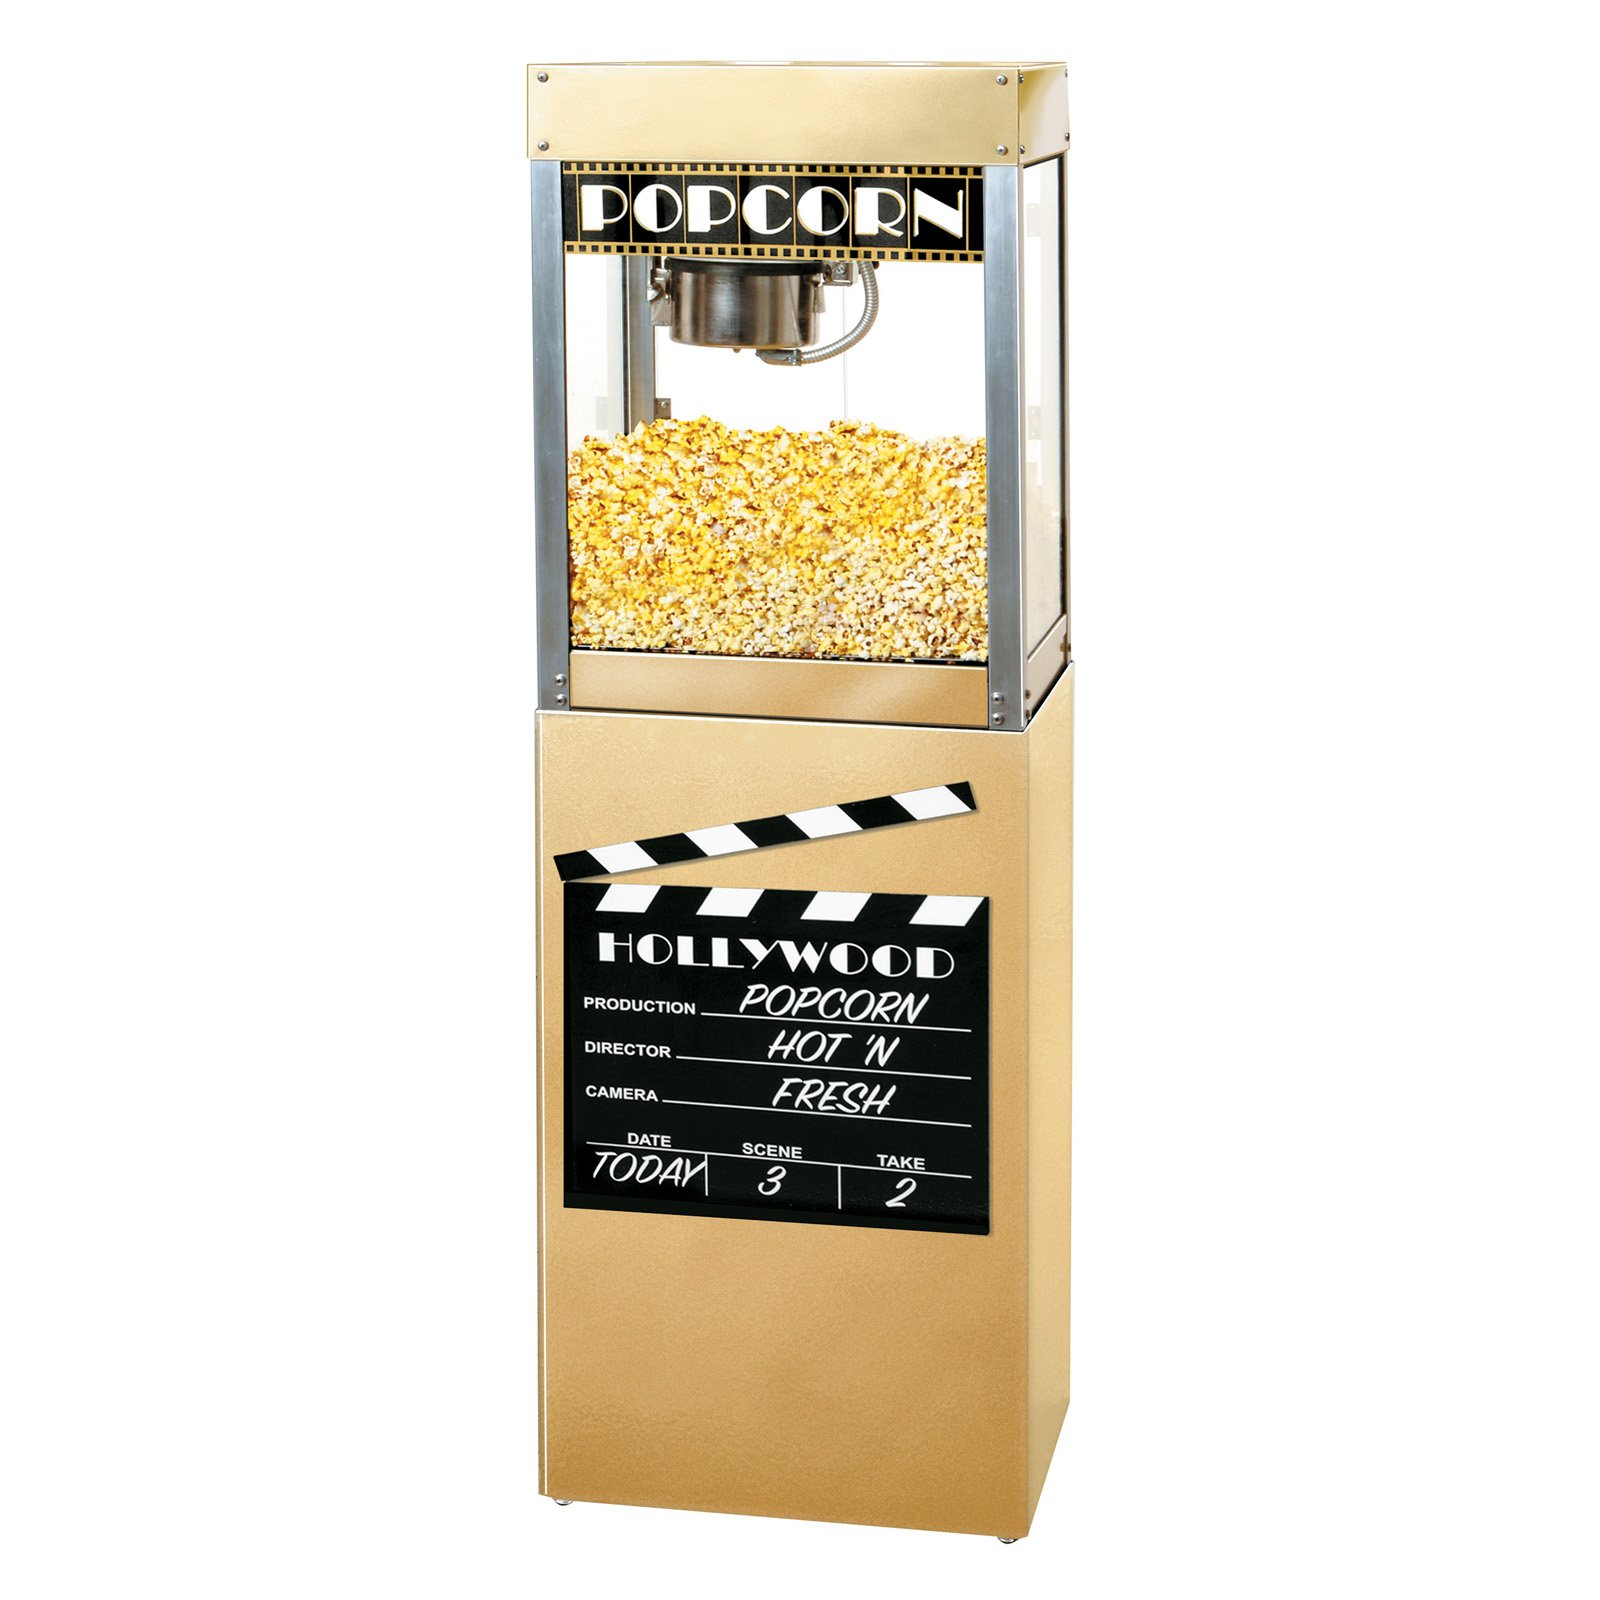 Benchmark USA Premiere Popcorn Popper with Pedestal by Benchmark USA Inc